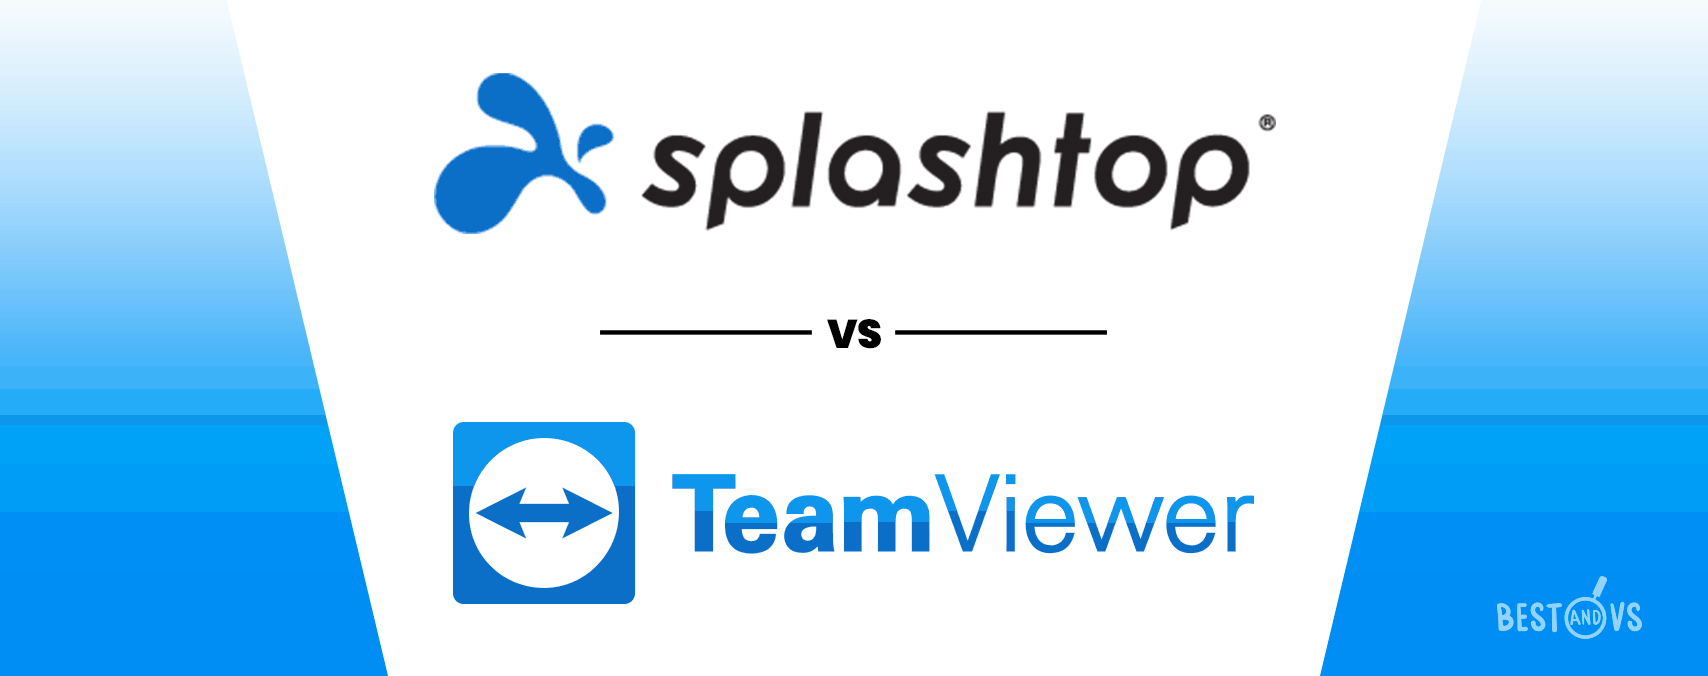 Splashtop VS TeamViewer Features & Pricing